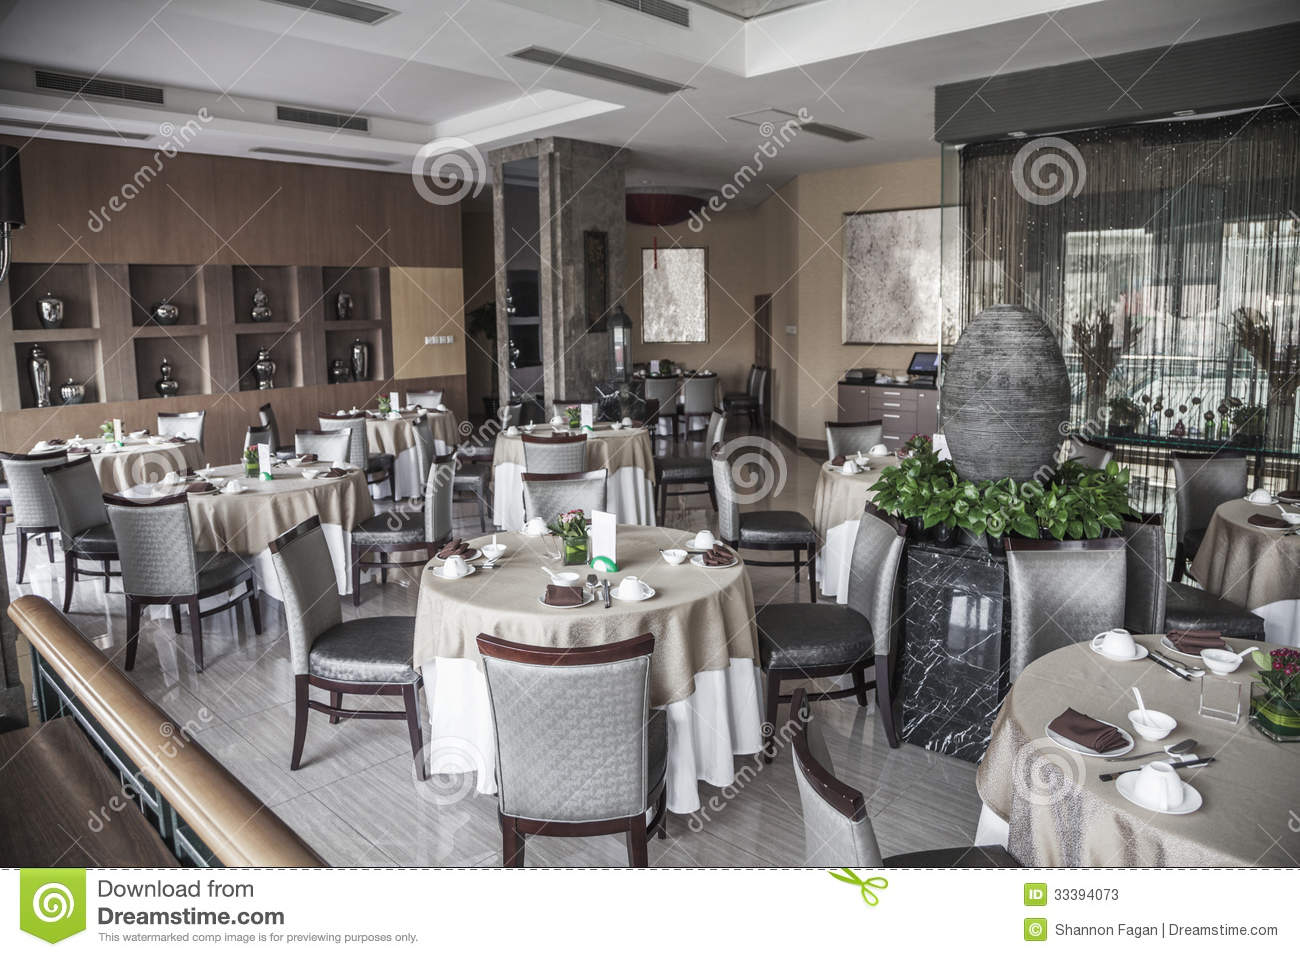 Dining Room With Elegant Table Settings Stock Photos